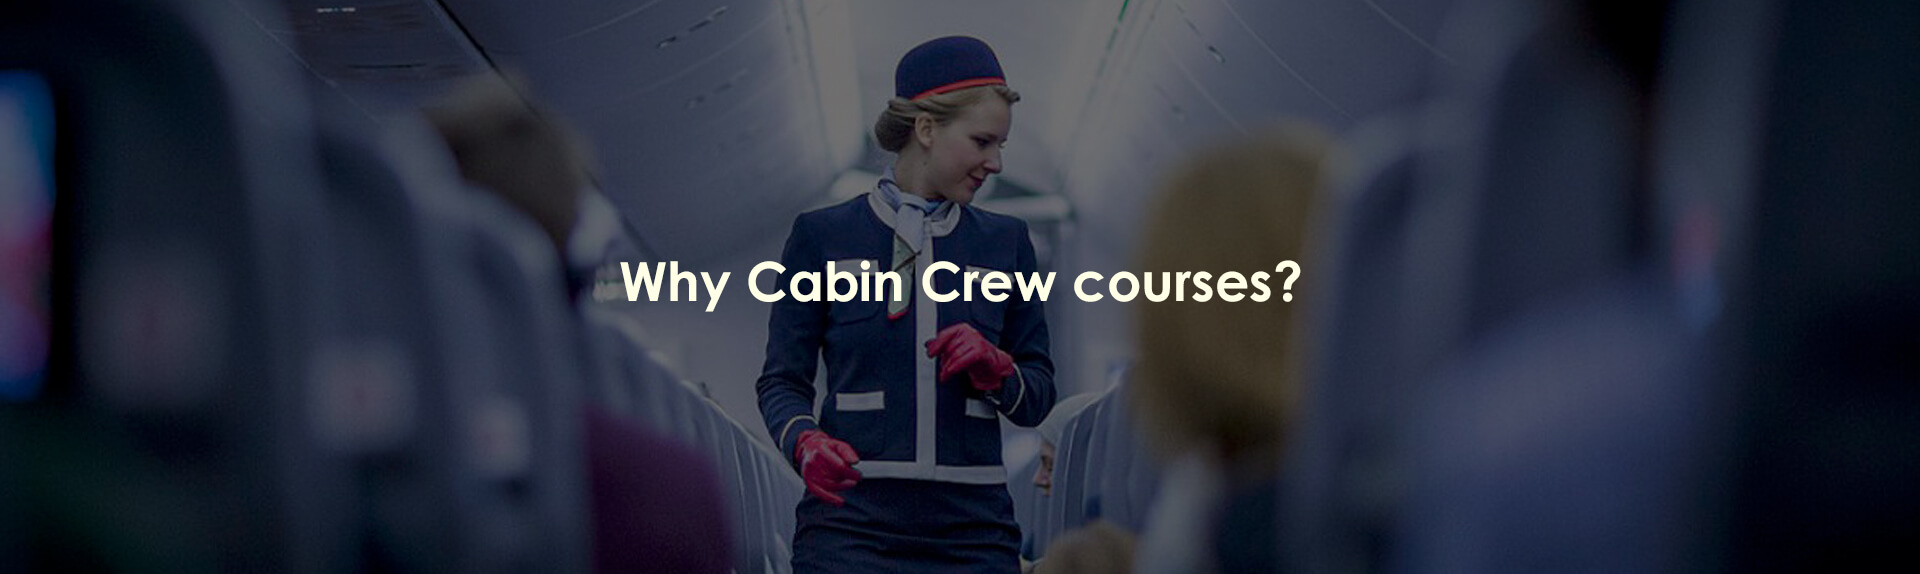 Why Cabin Crew courses?